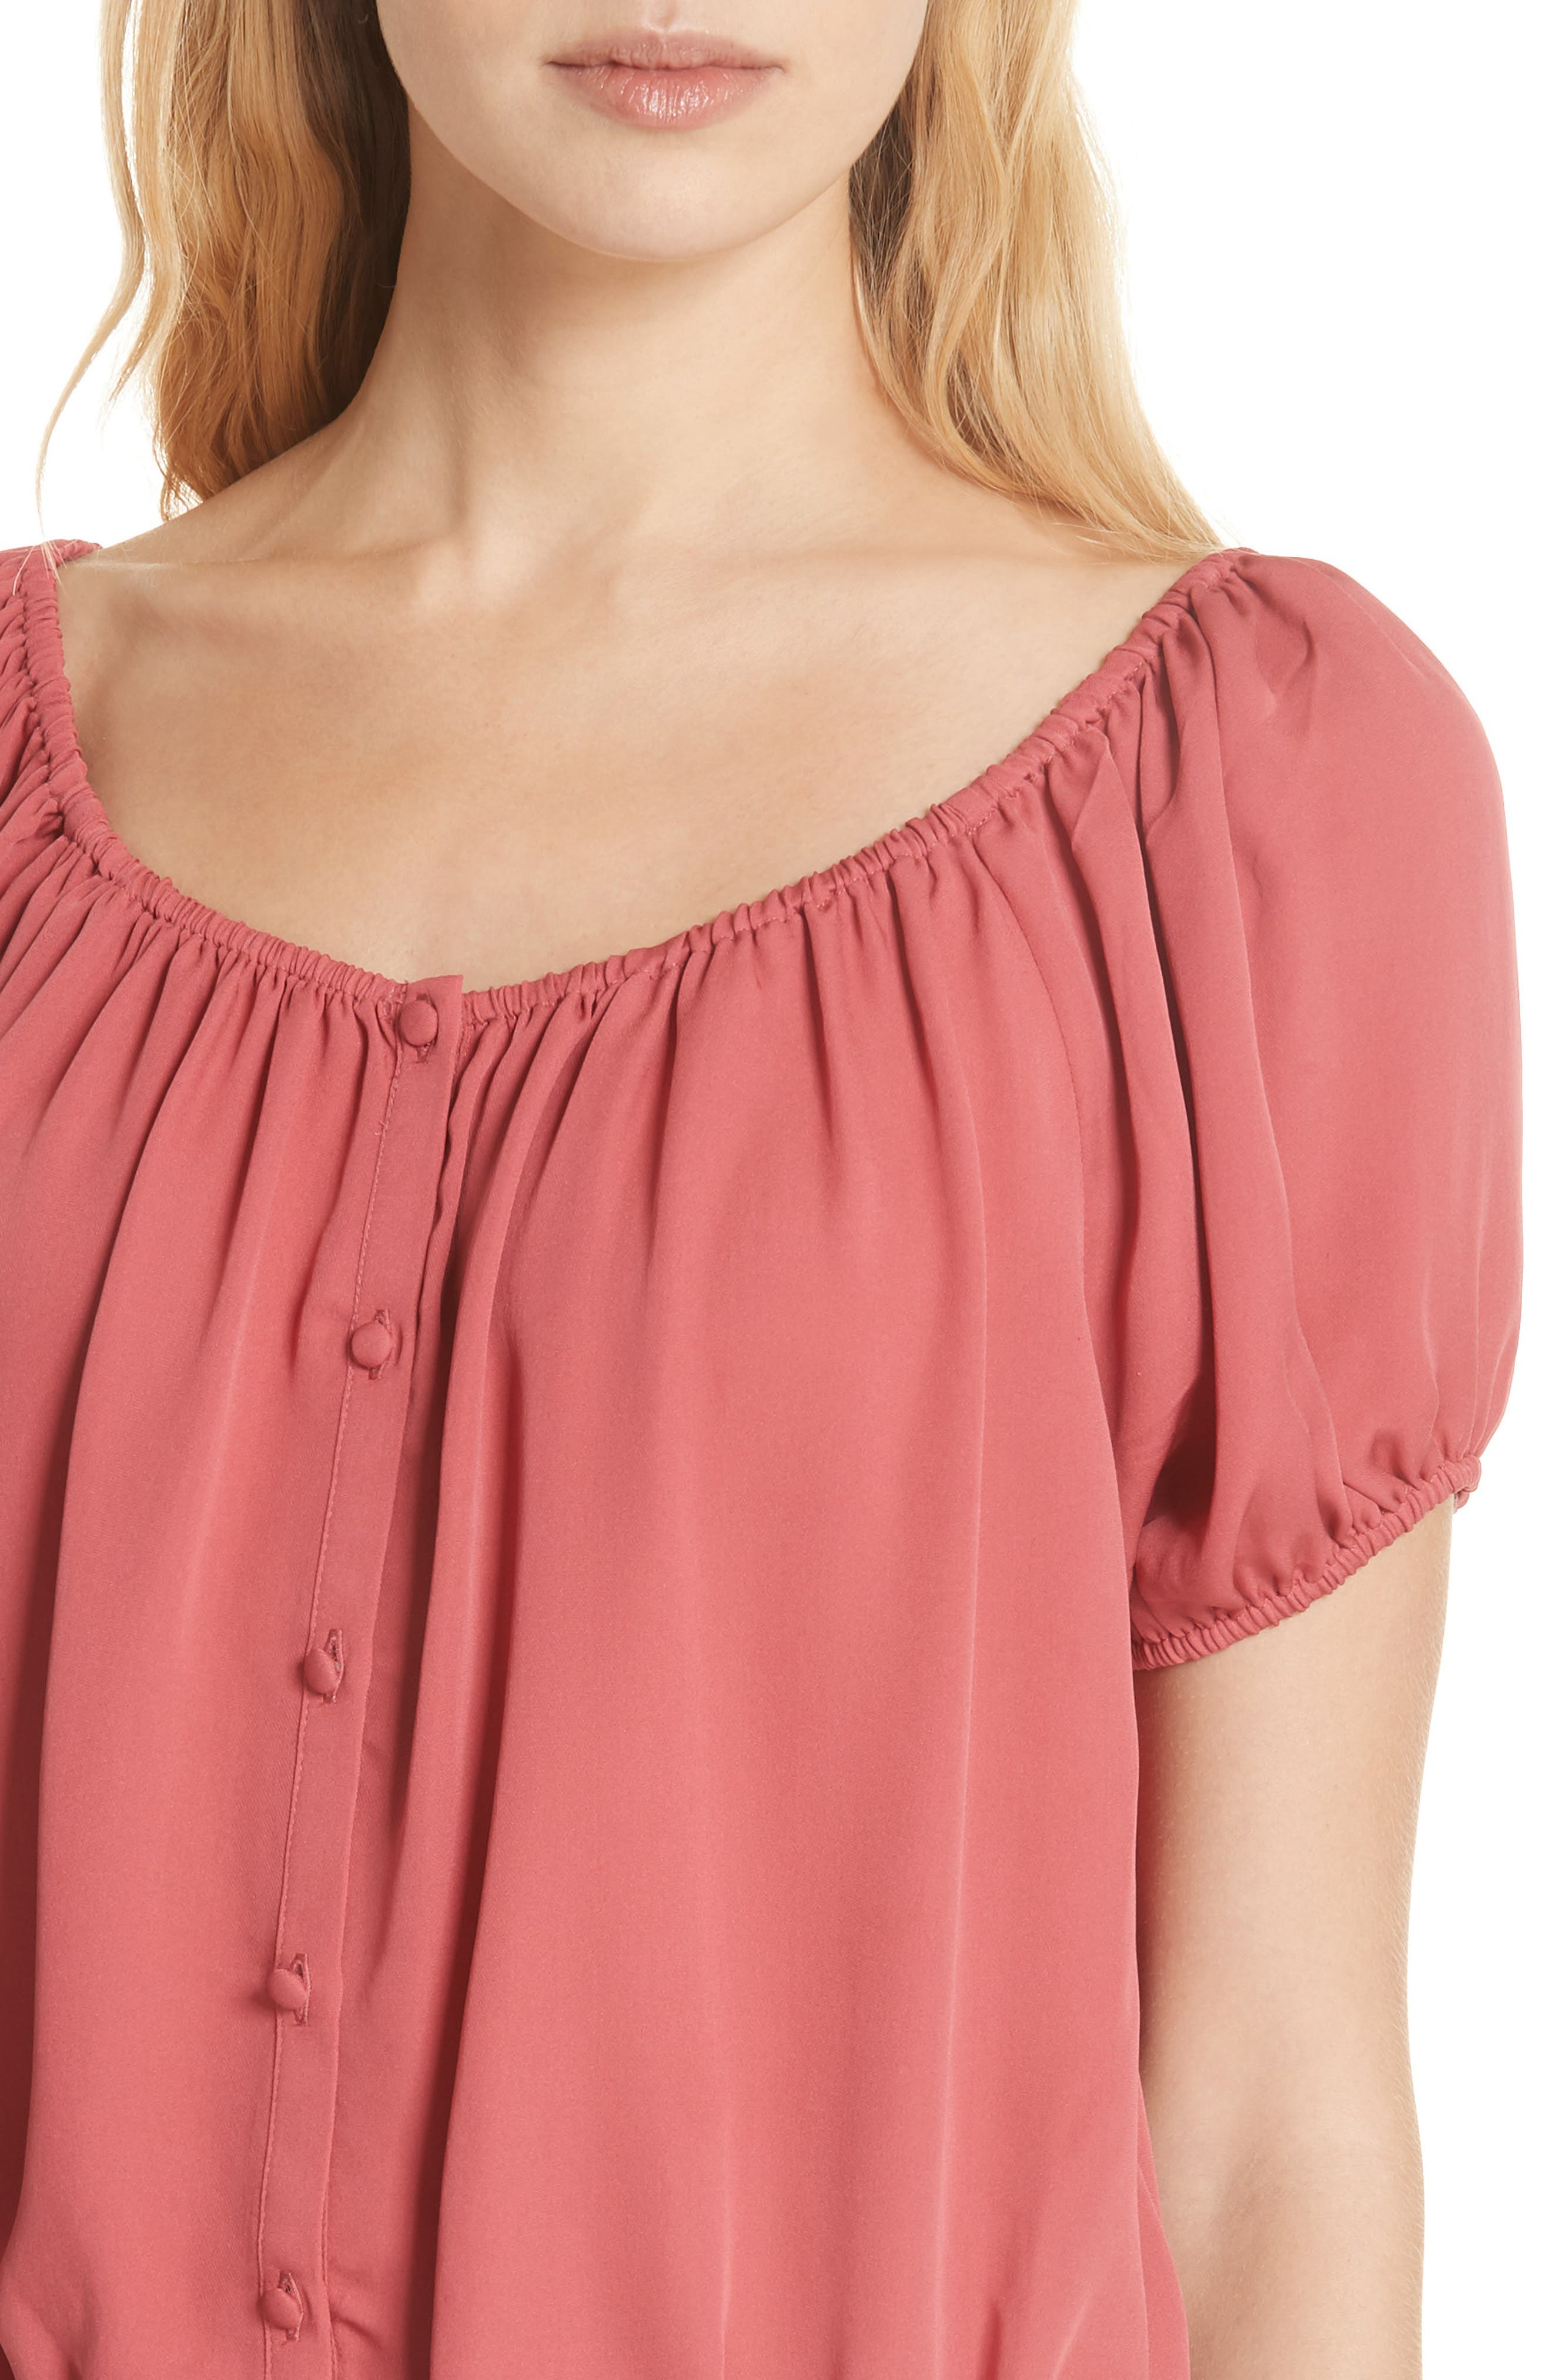 Blesina Tie Front Short Sleeve Silk Blouse,                             Alternate thumbnail 4, color,                             West Rose